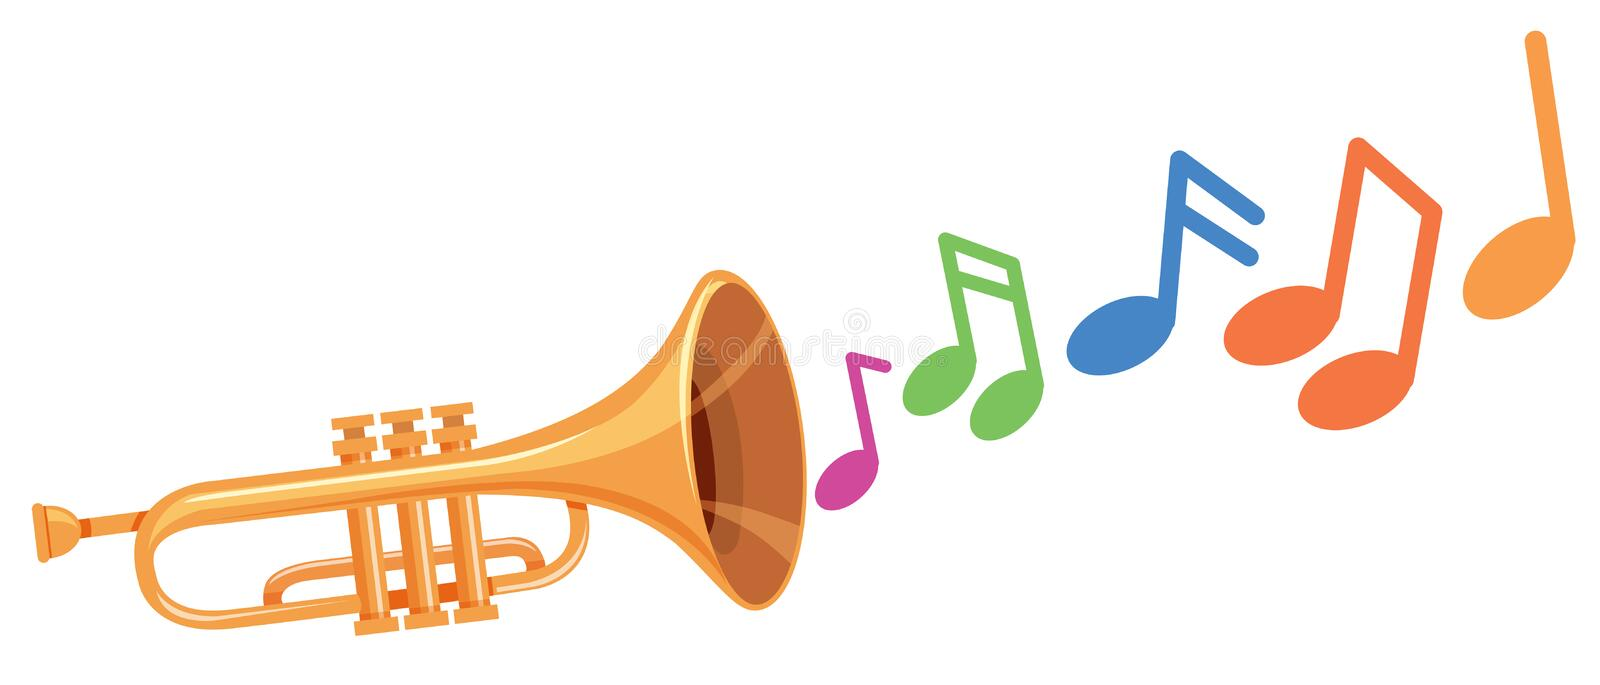 A trumpet with music note. Illustration stock illustration